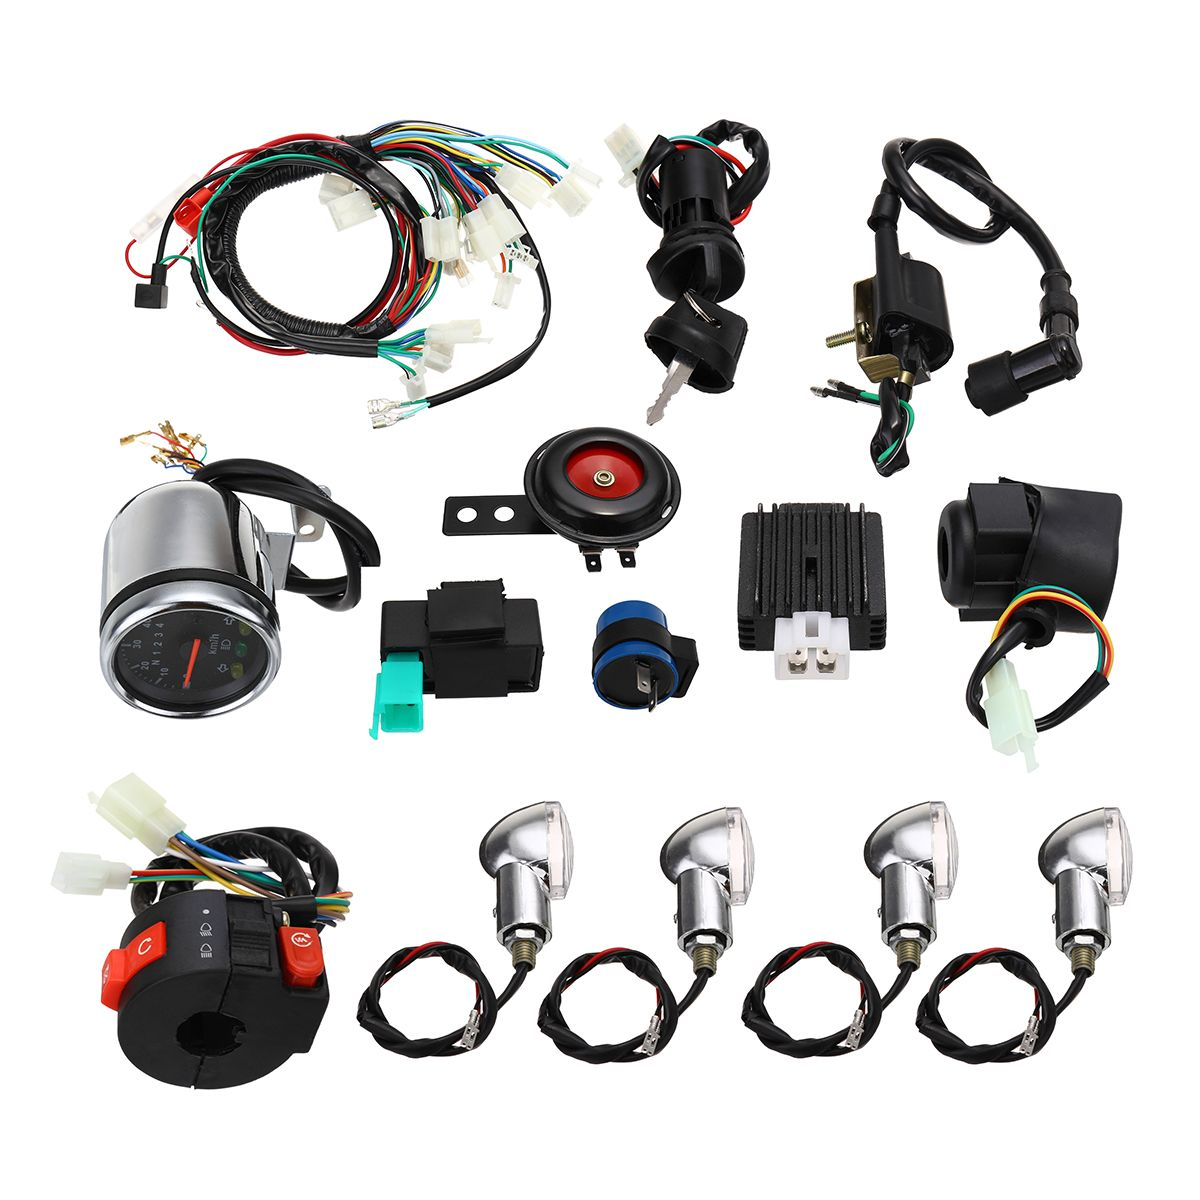 small resolution of  us 53 99 full electric start engine wiring harness loom for cdi 110cc 125cc quad bike atv full electric start engine wiring harness loom cc cc